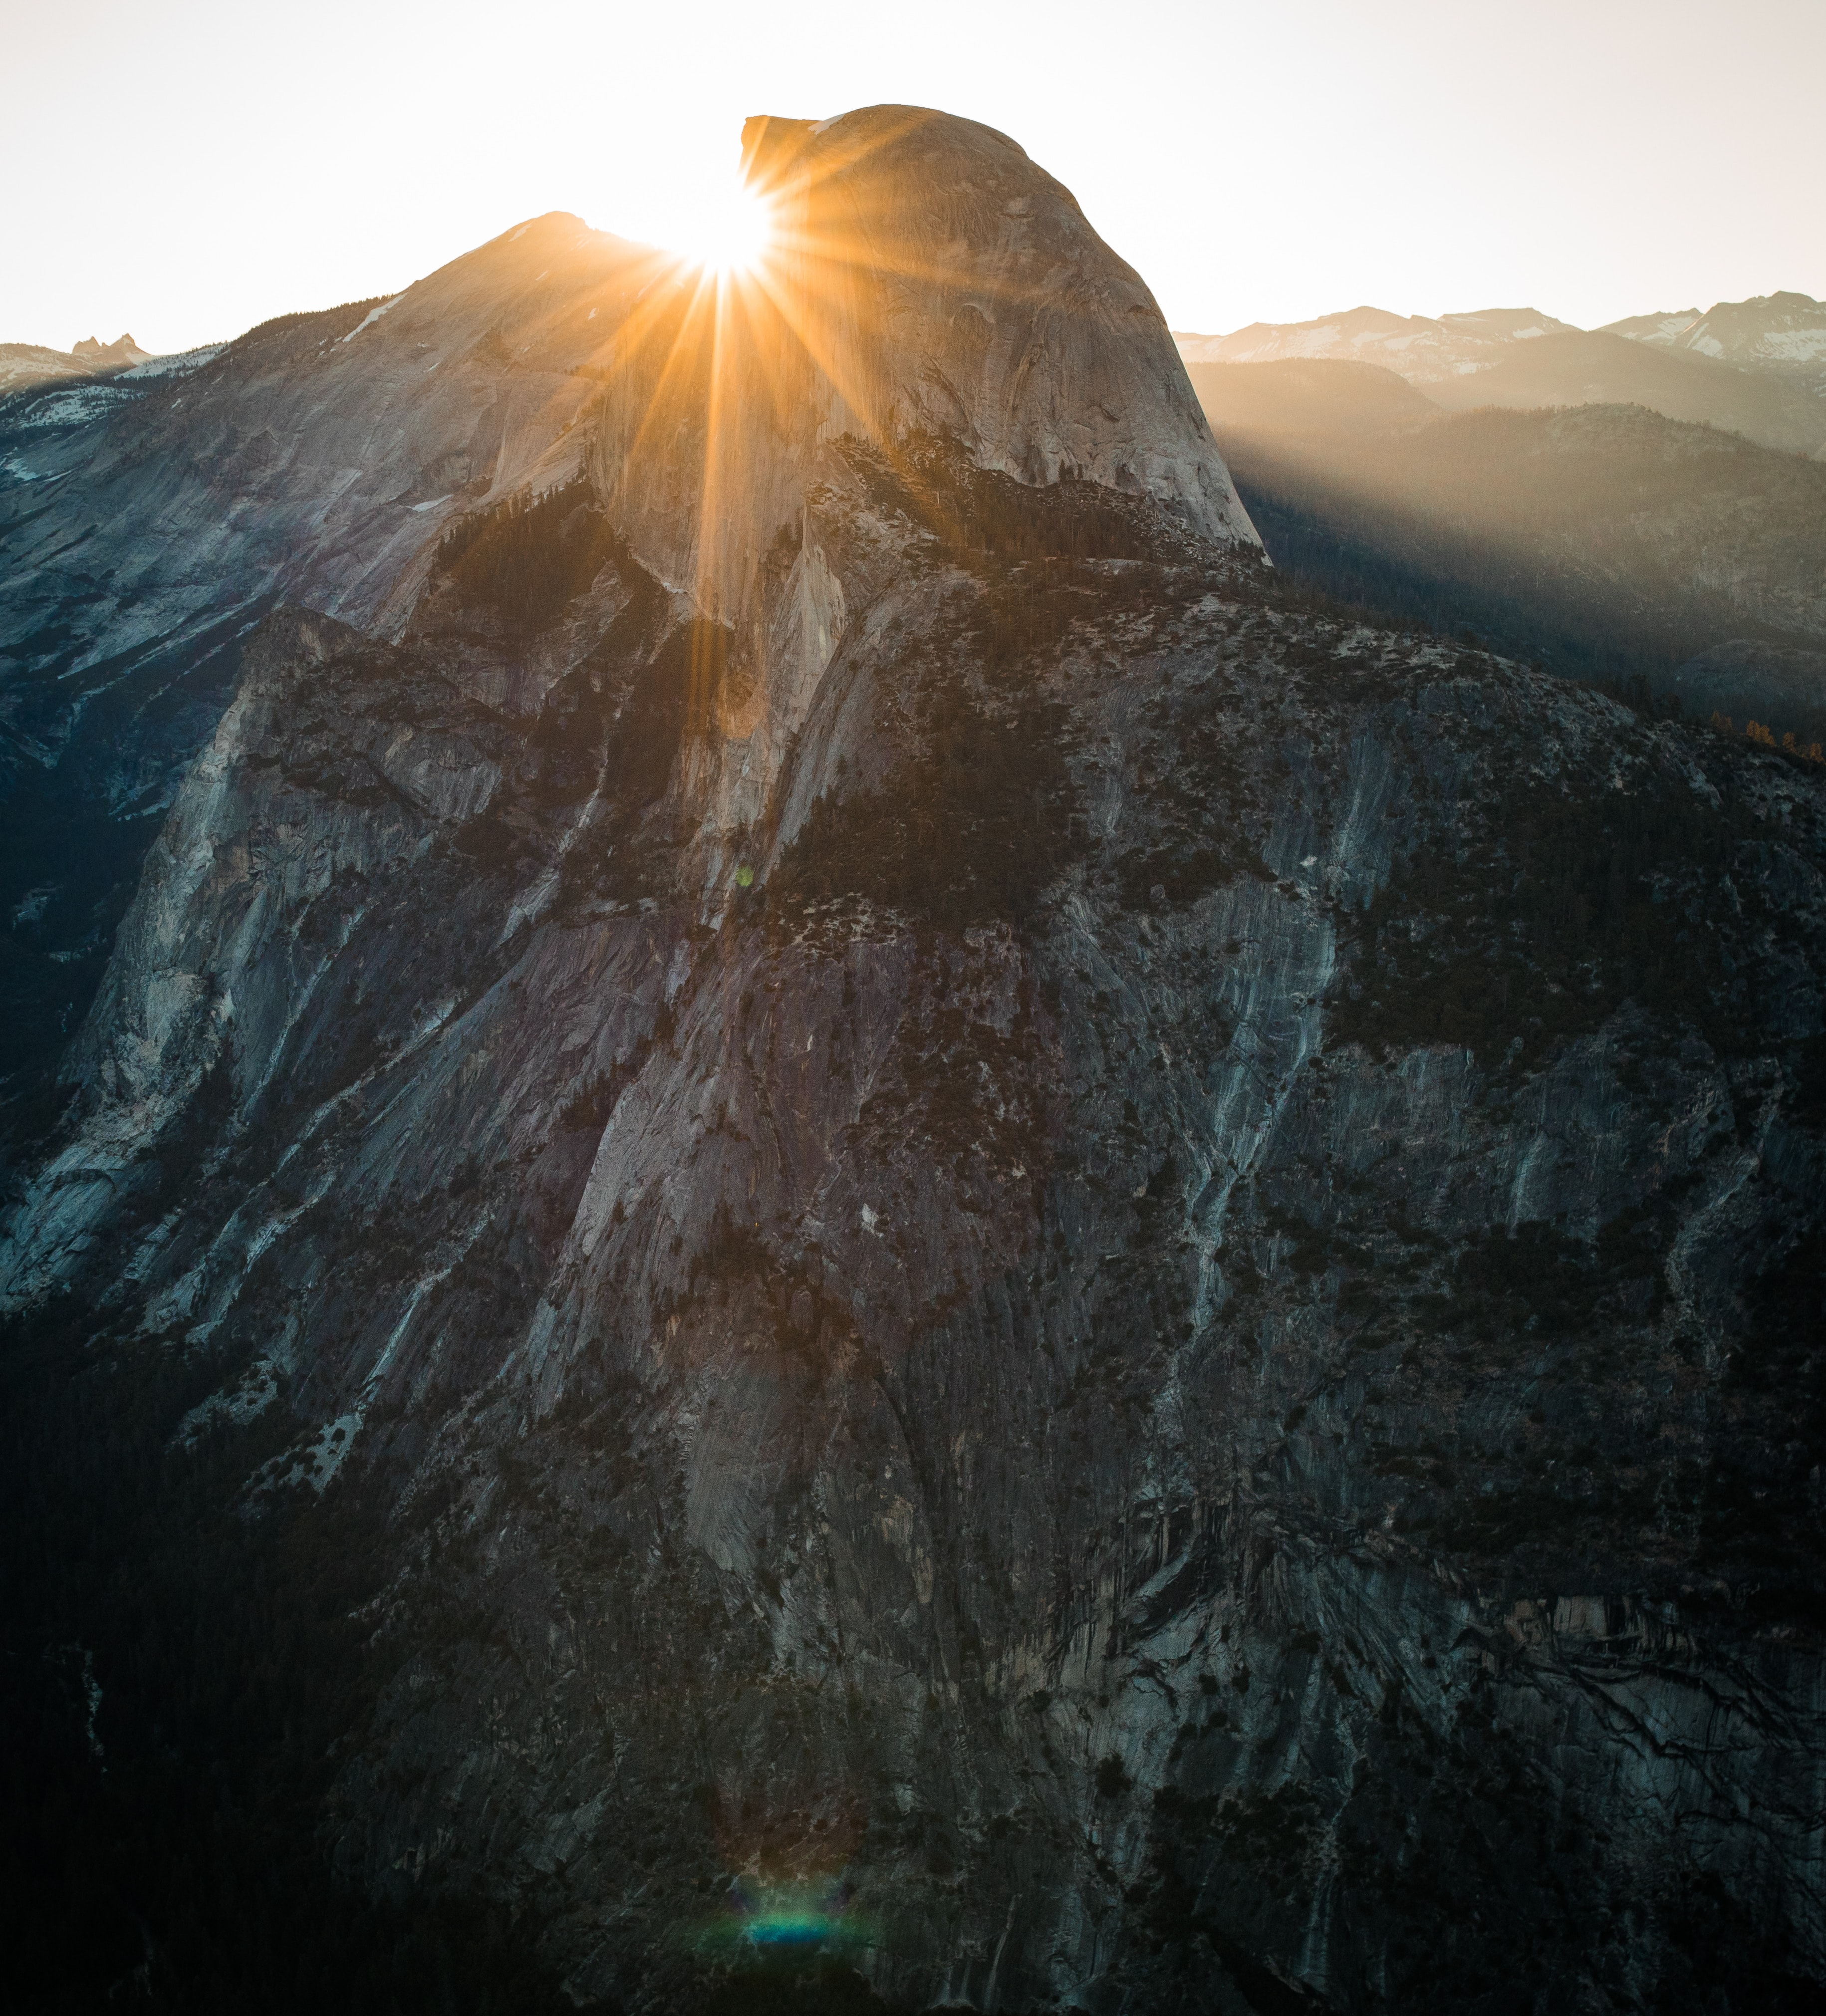 Setting sun behind a cliff in Yosemite National Park